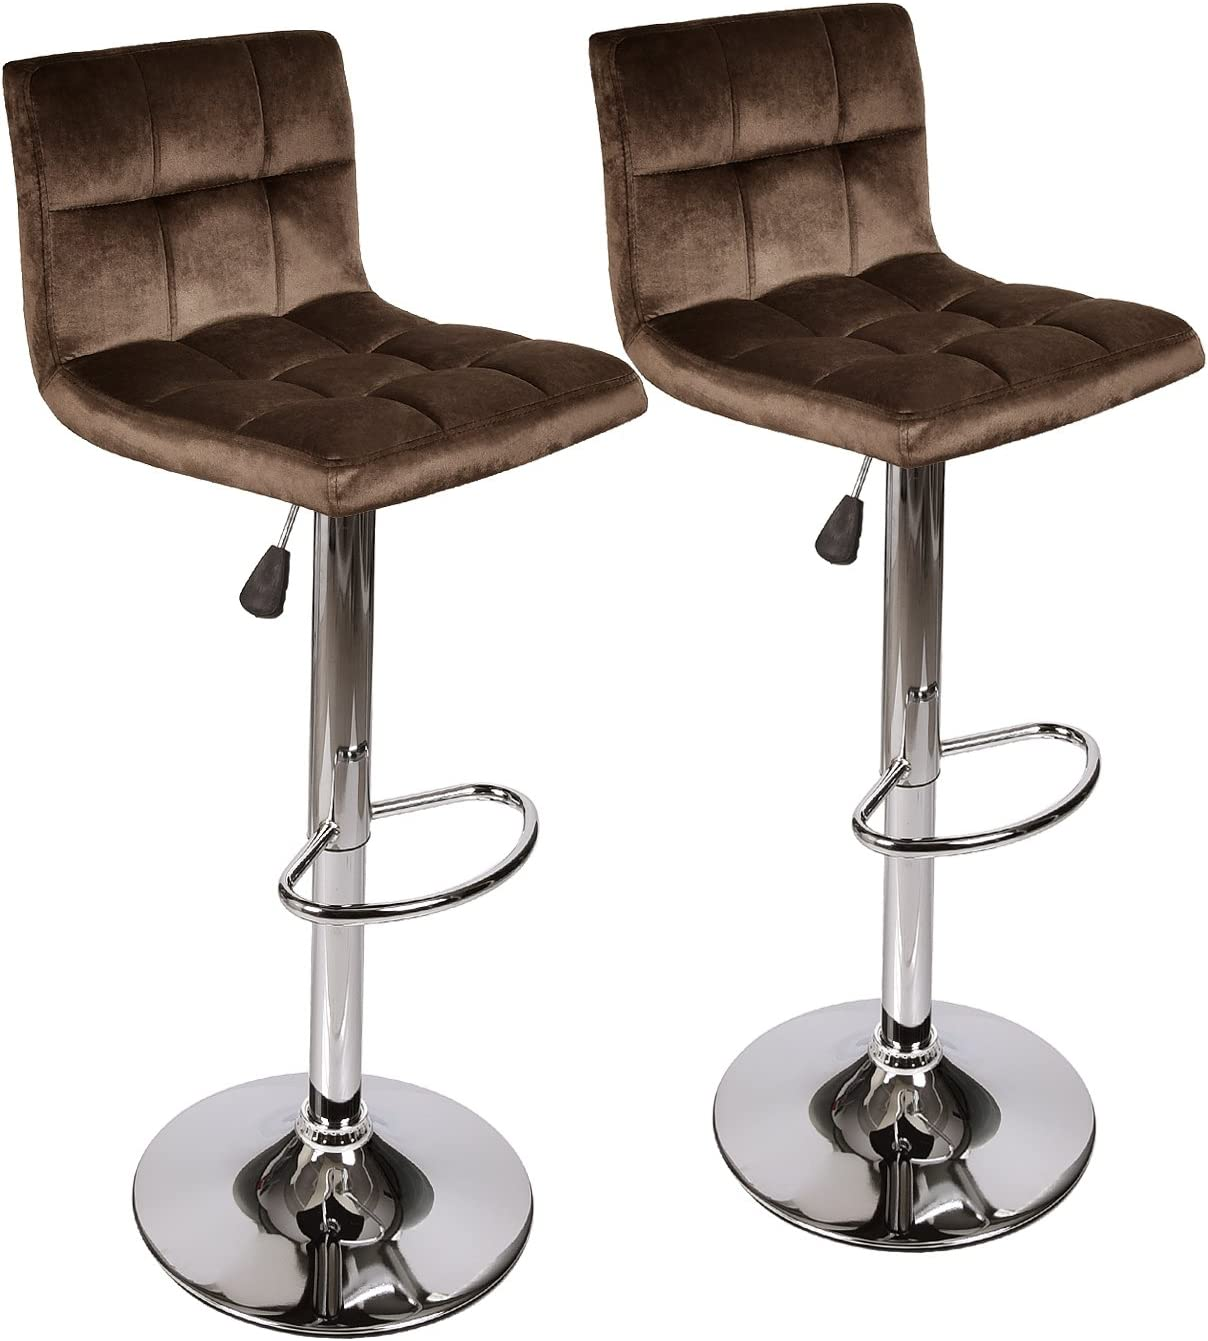 ELEWISH Pub Bar Table Round White MDF Swivel Top with Chrome Finish Base Adjustable Height for Counter Brown Velvet